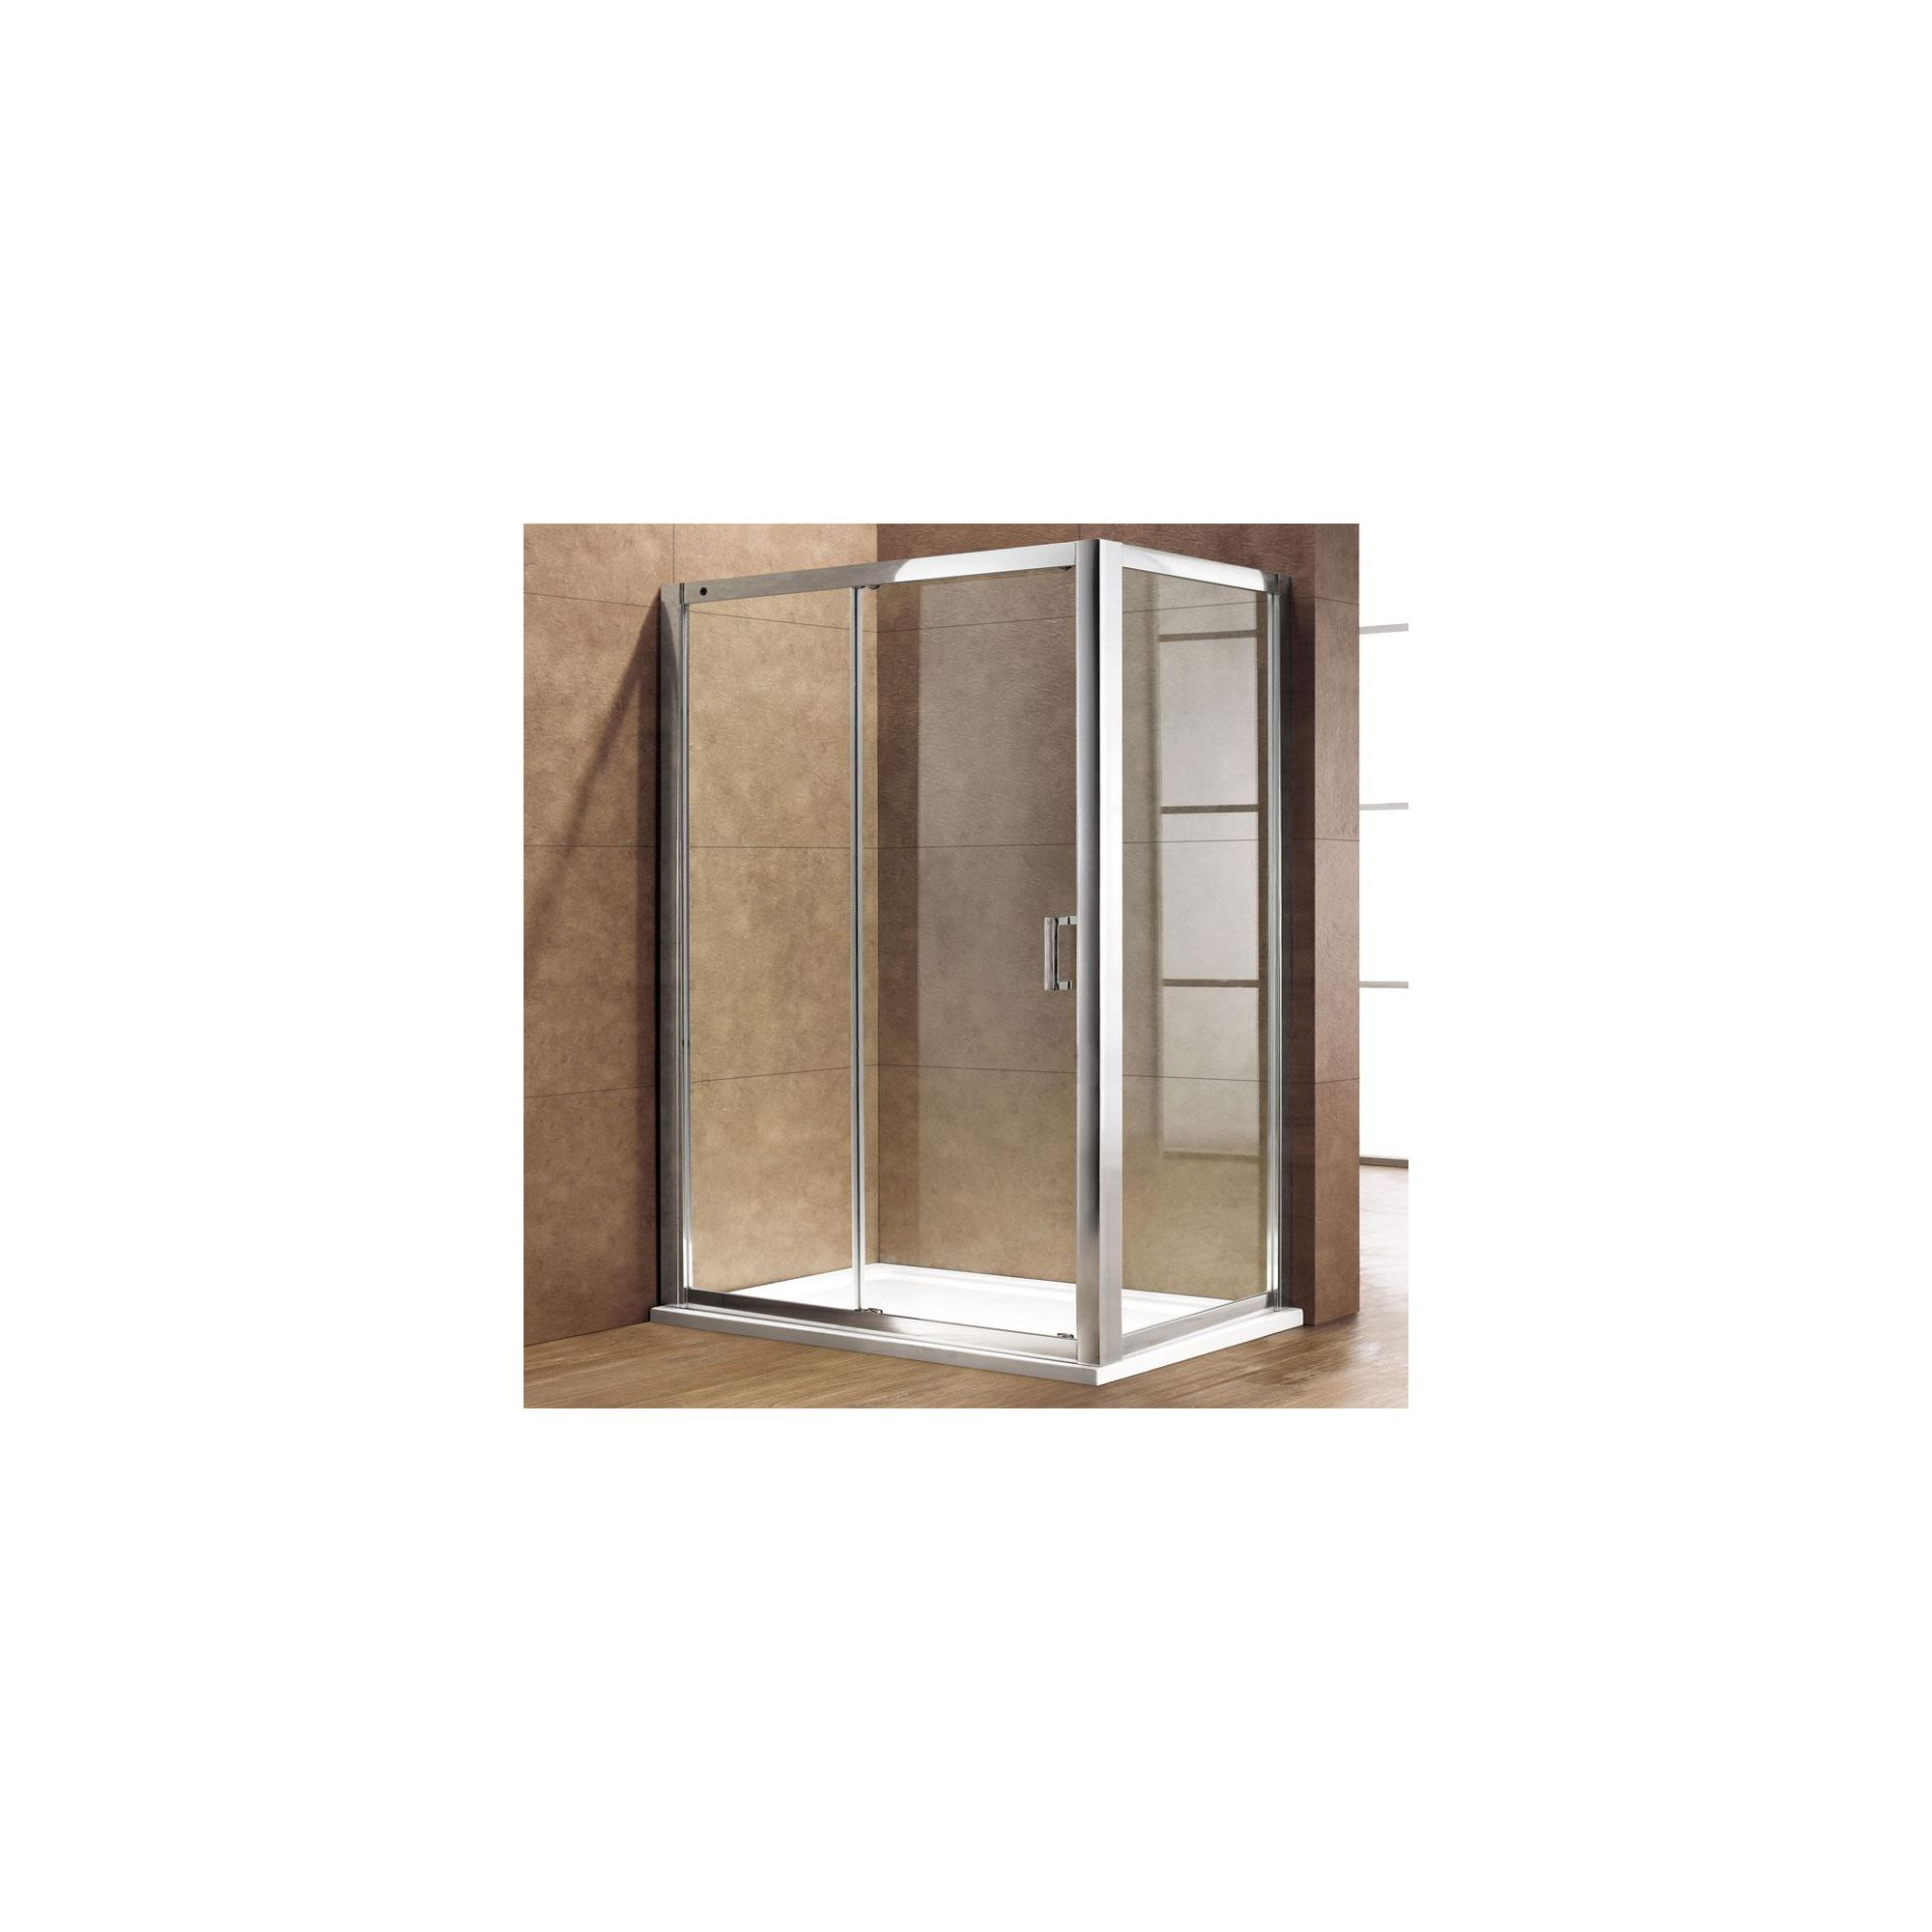 Duchy Premium Single Sliding Door Shower Enclosure, 1200mm x 700mm, 8mm Glass, Low Profile Tray at Tesco Direct